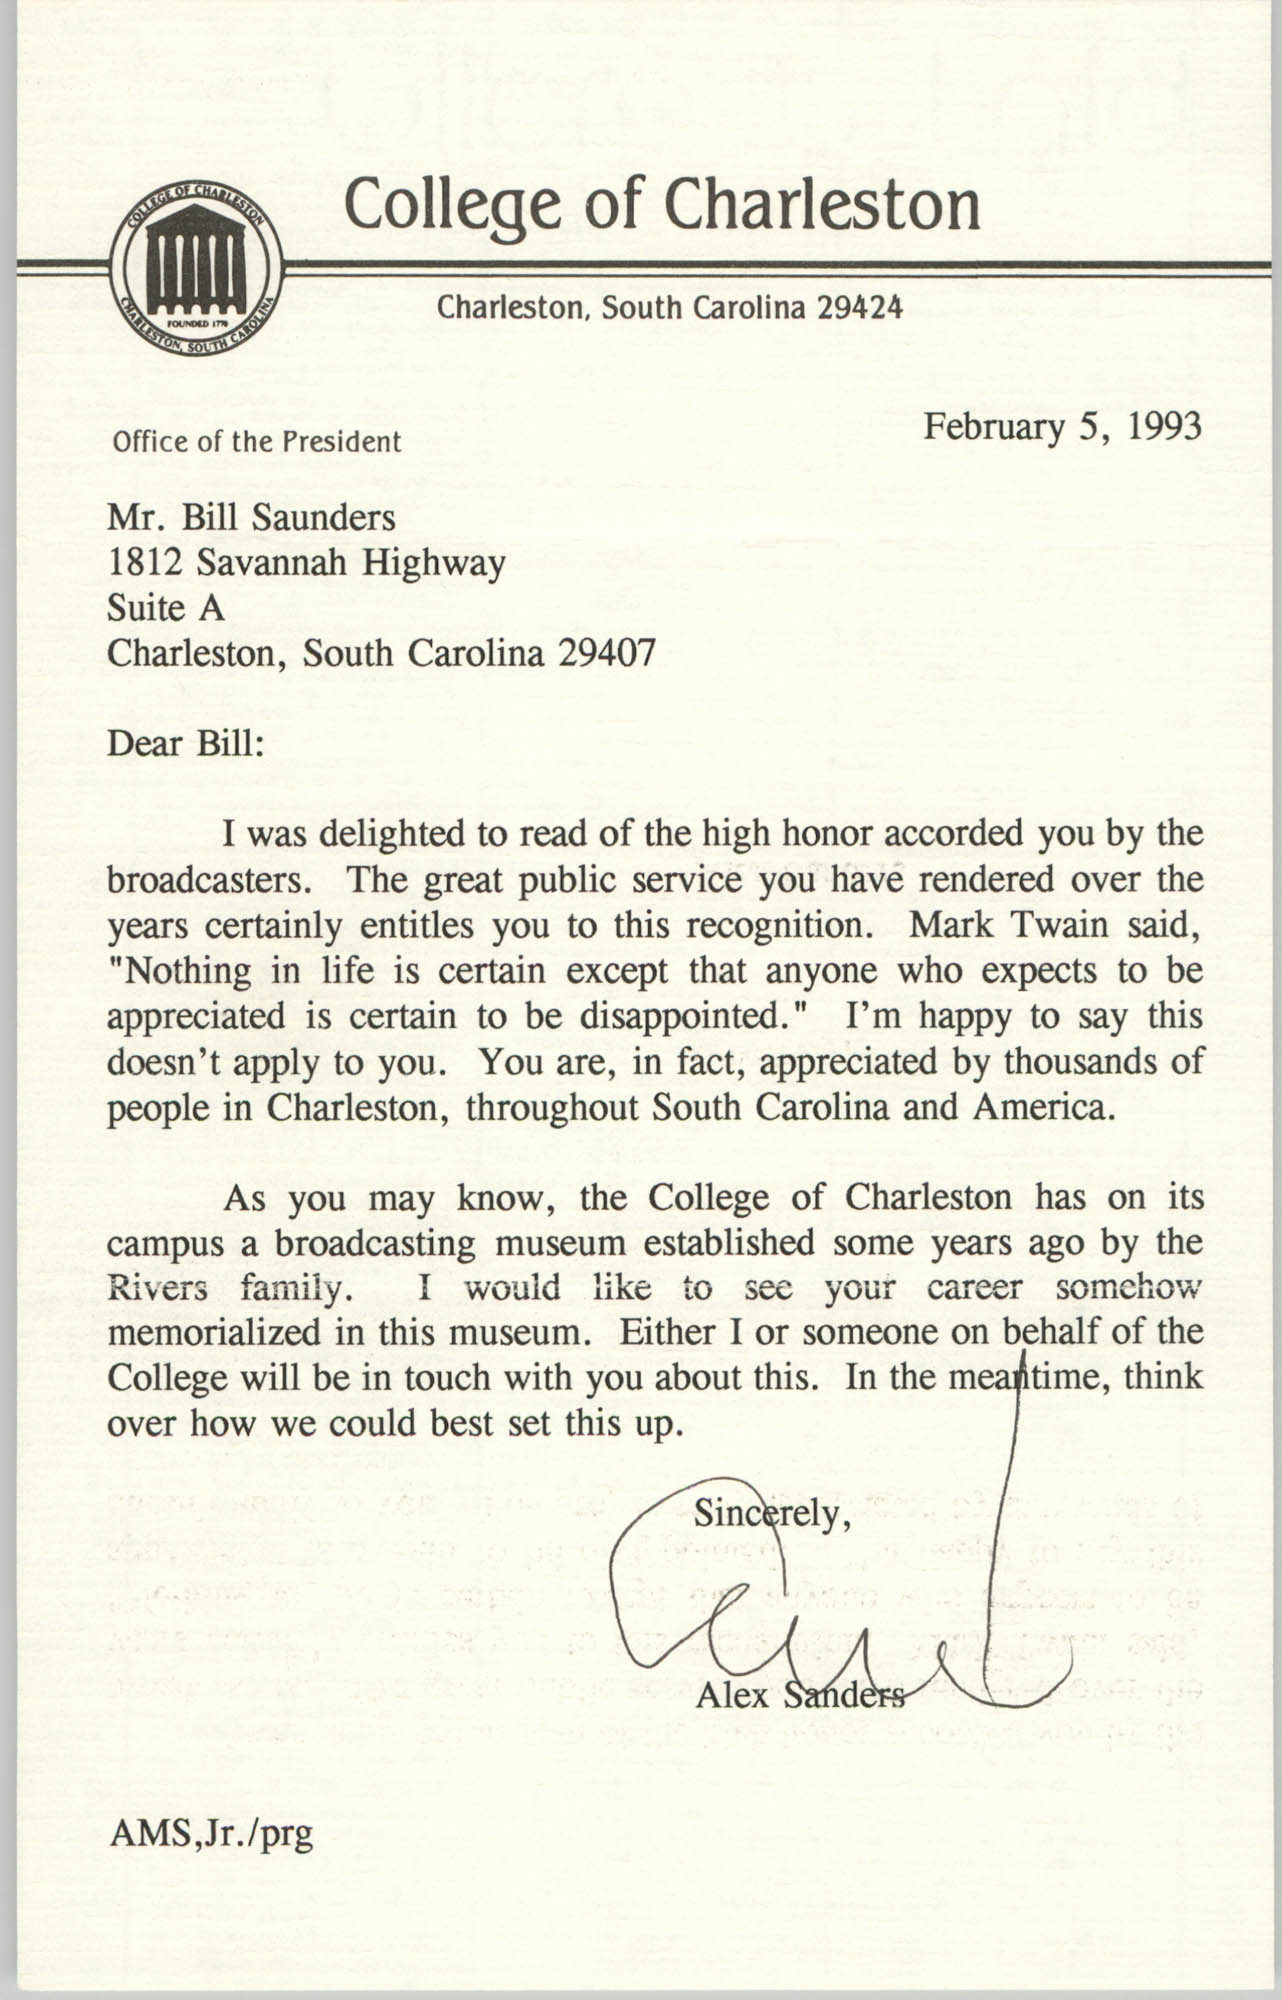 Letter from Alex Sanders to William Saunders, February 5, 1993